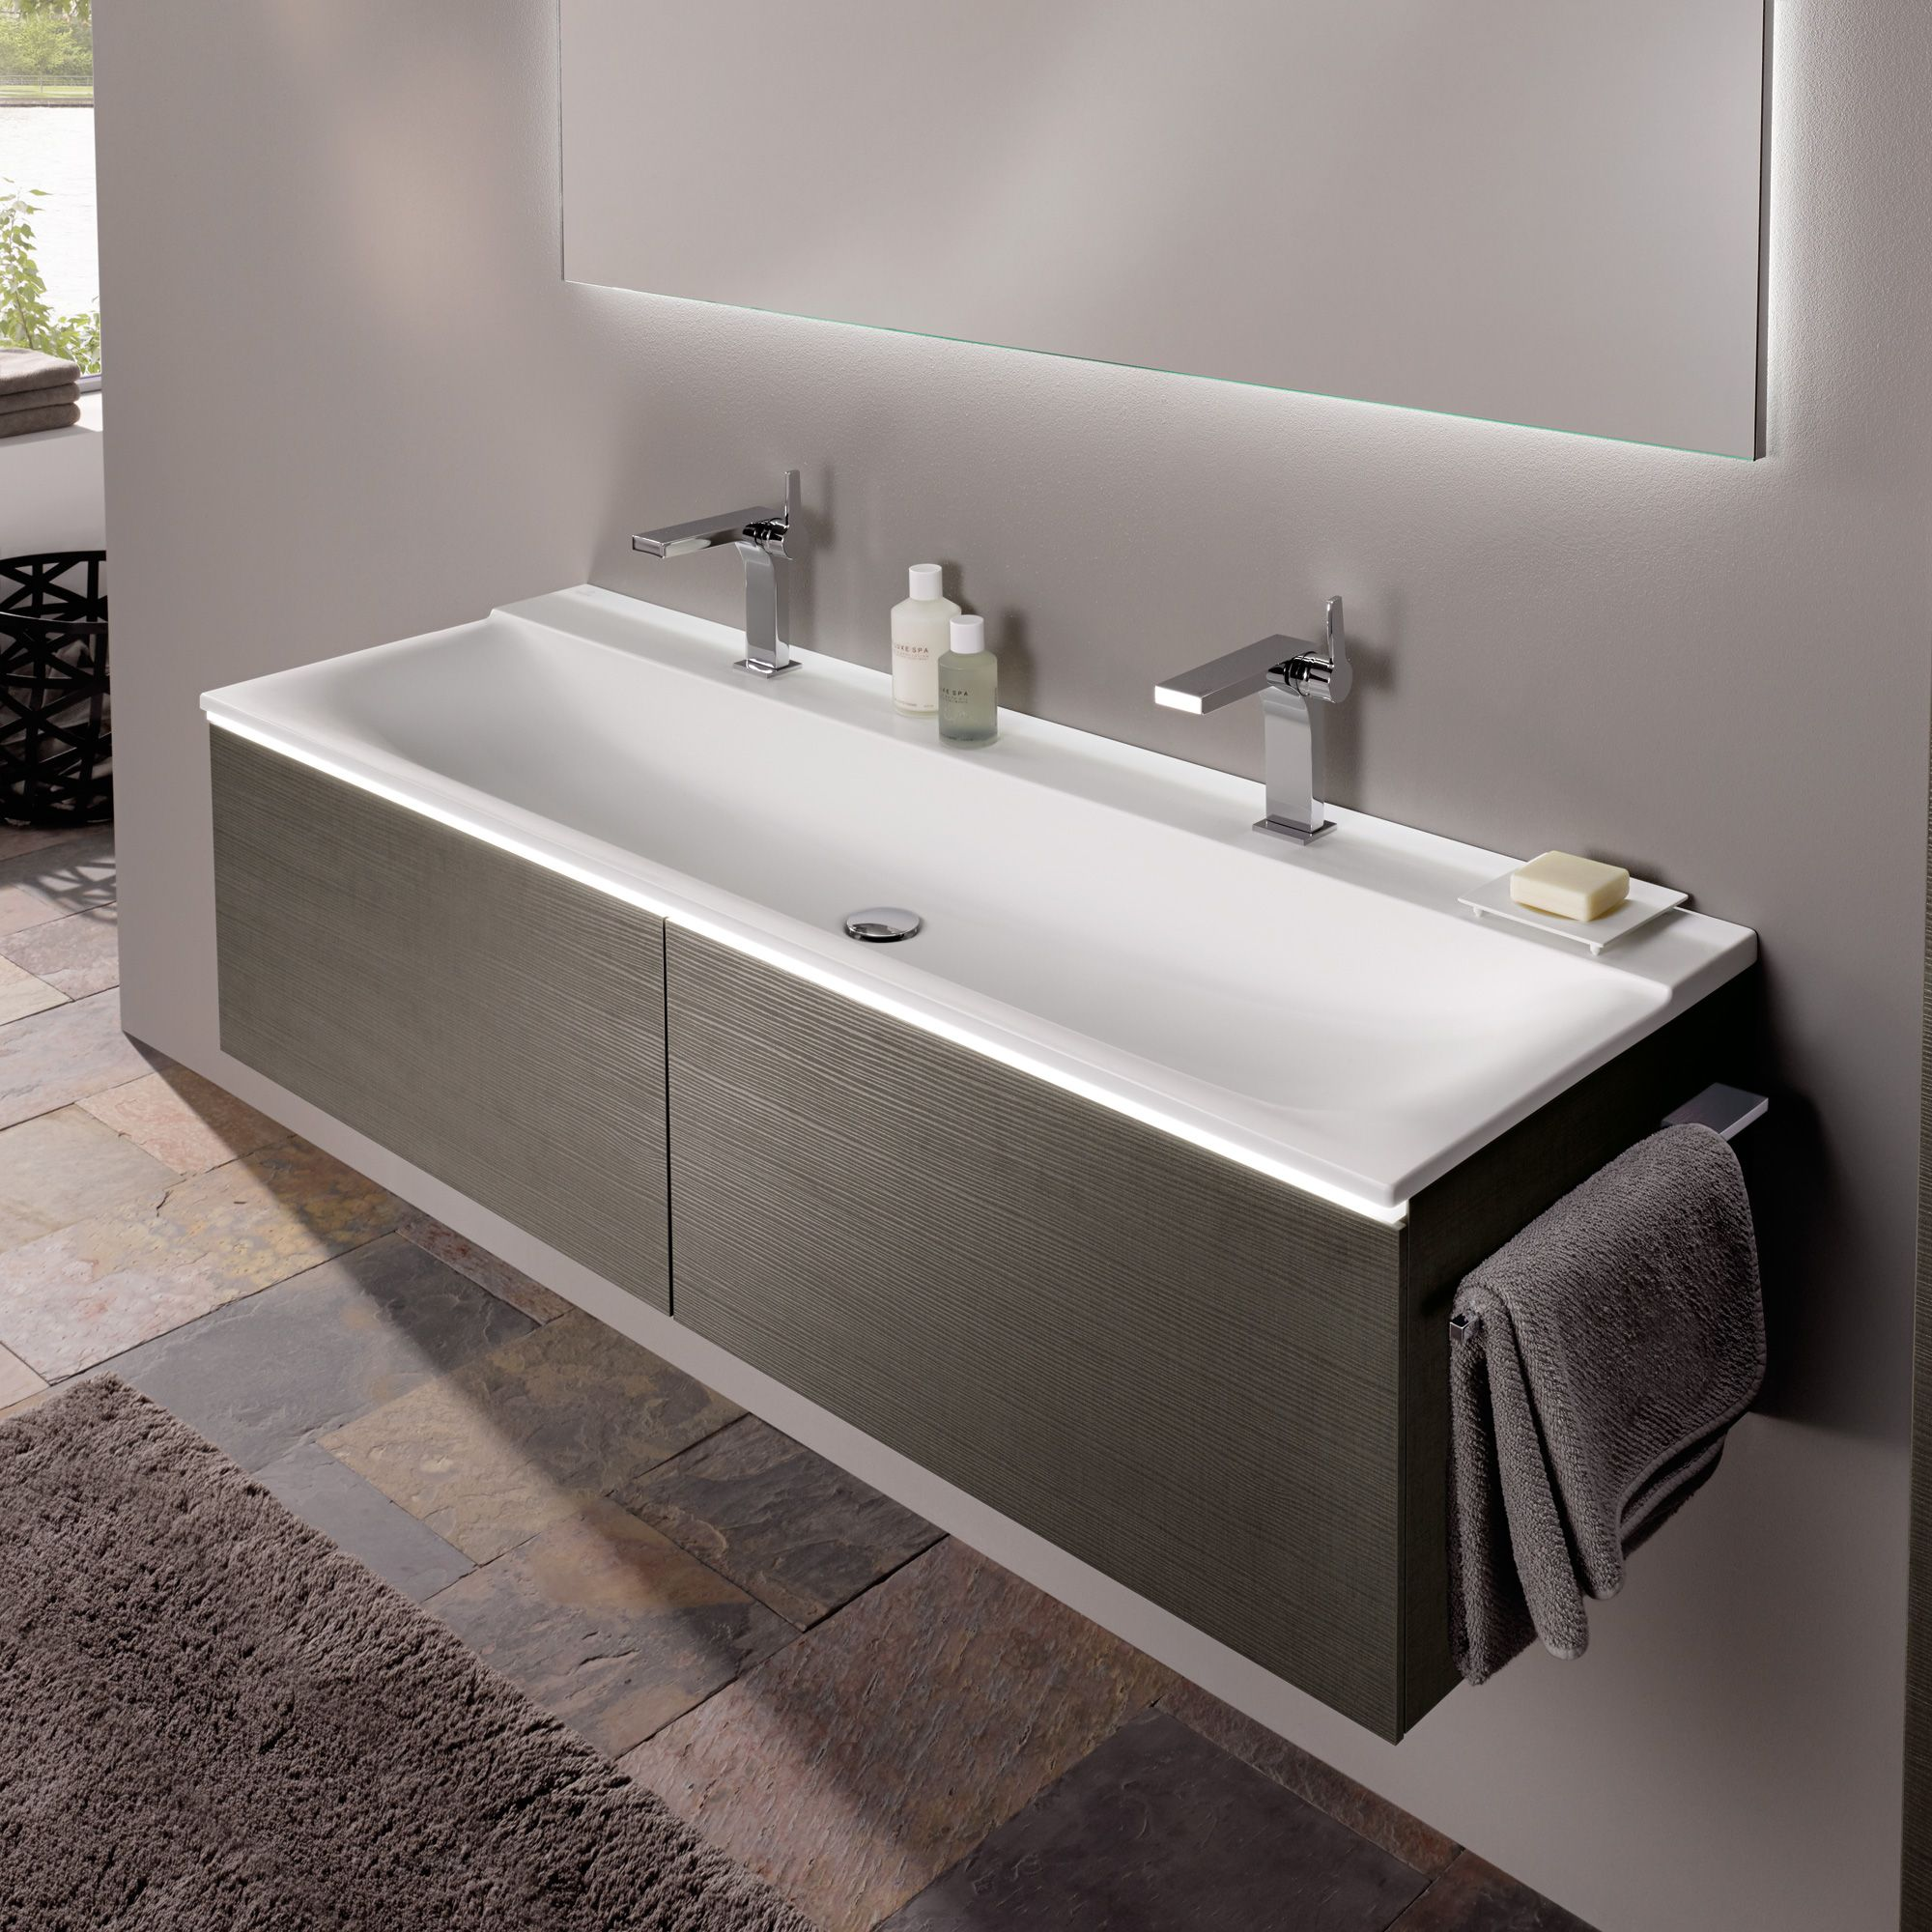 xeno 2 bathroom furniture  google search  badezimmer